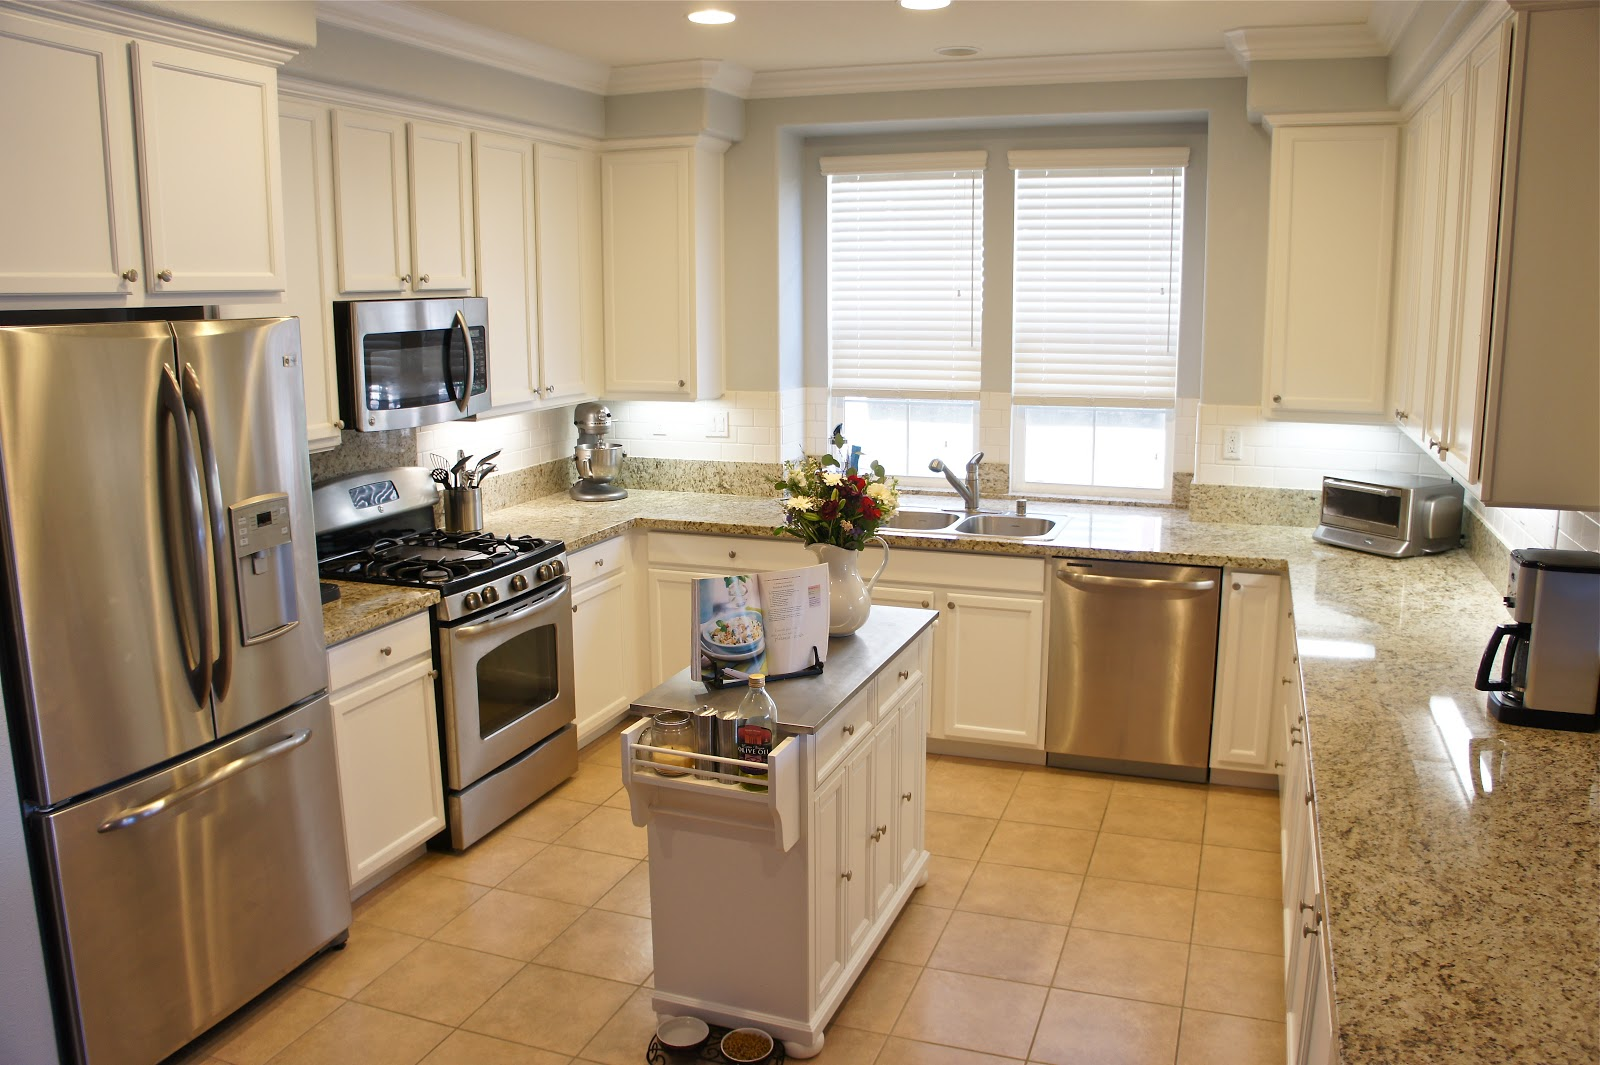 Southern Belle Of The West: Kitchen Updates